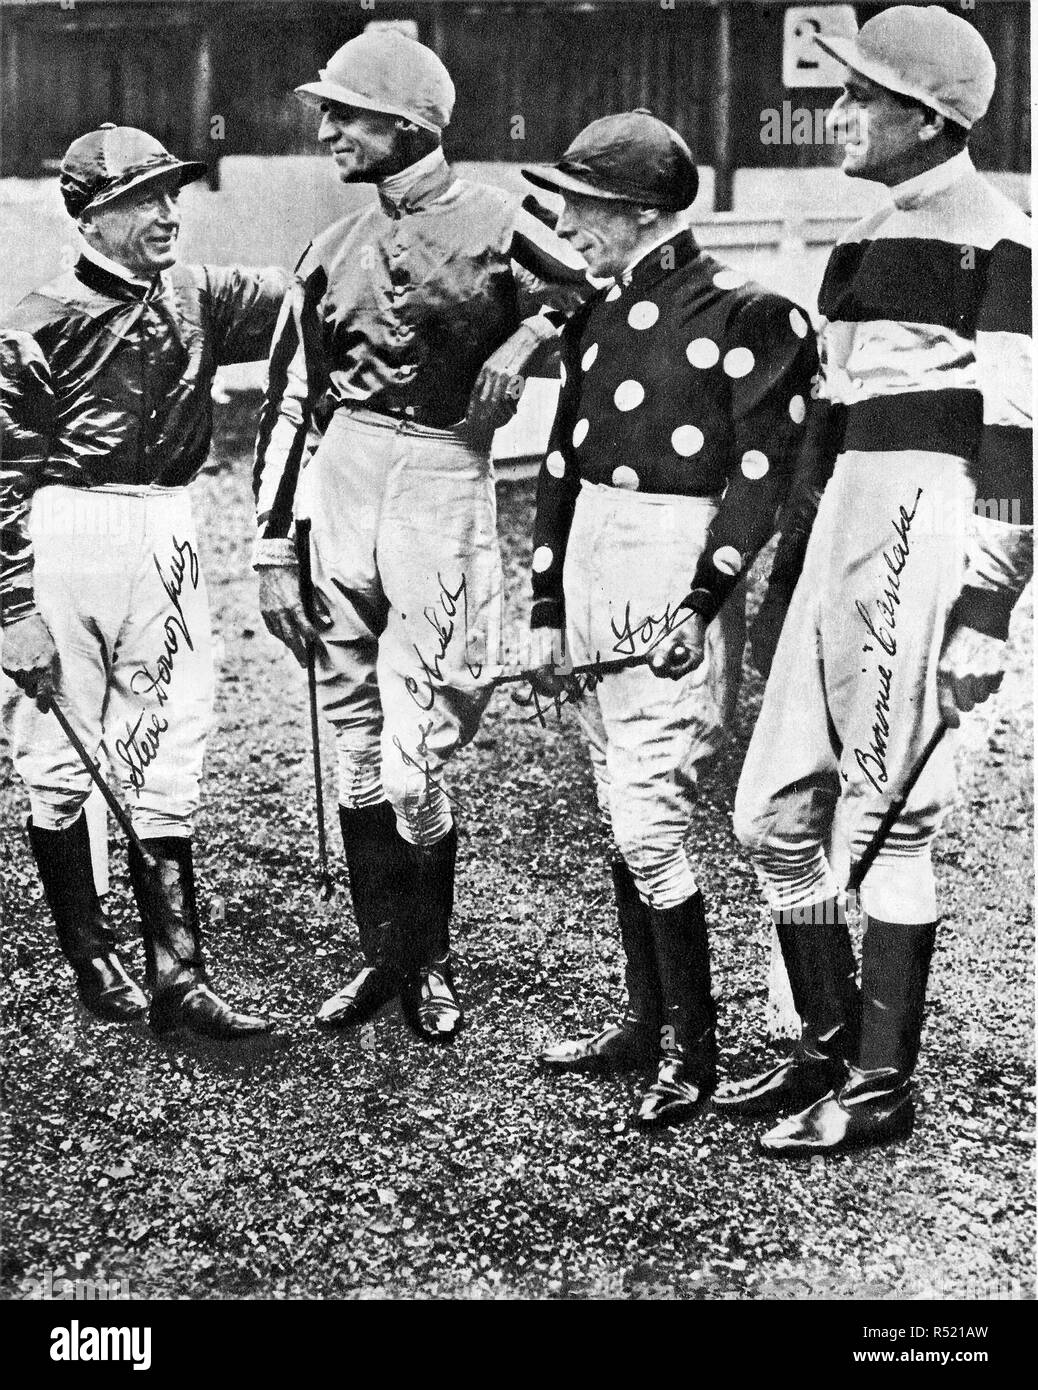 1934 an autographed photograph of four famous British Jockeys, Steve Donoghue, French born Joe Childs, (celebrating their 50th birthday on that day ) with Freddie Fox and Australian, Bernard 'Brownie' Carslake - Stock Image